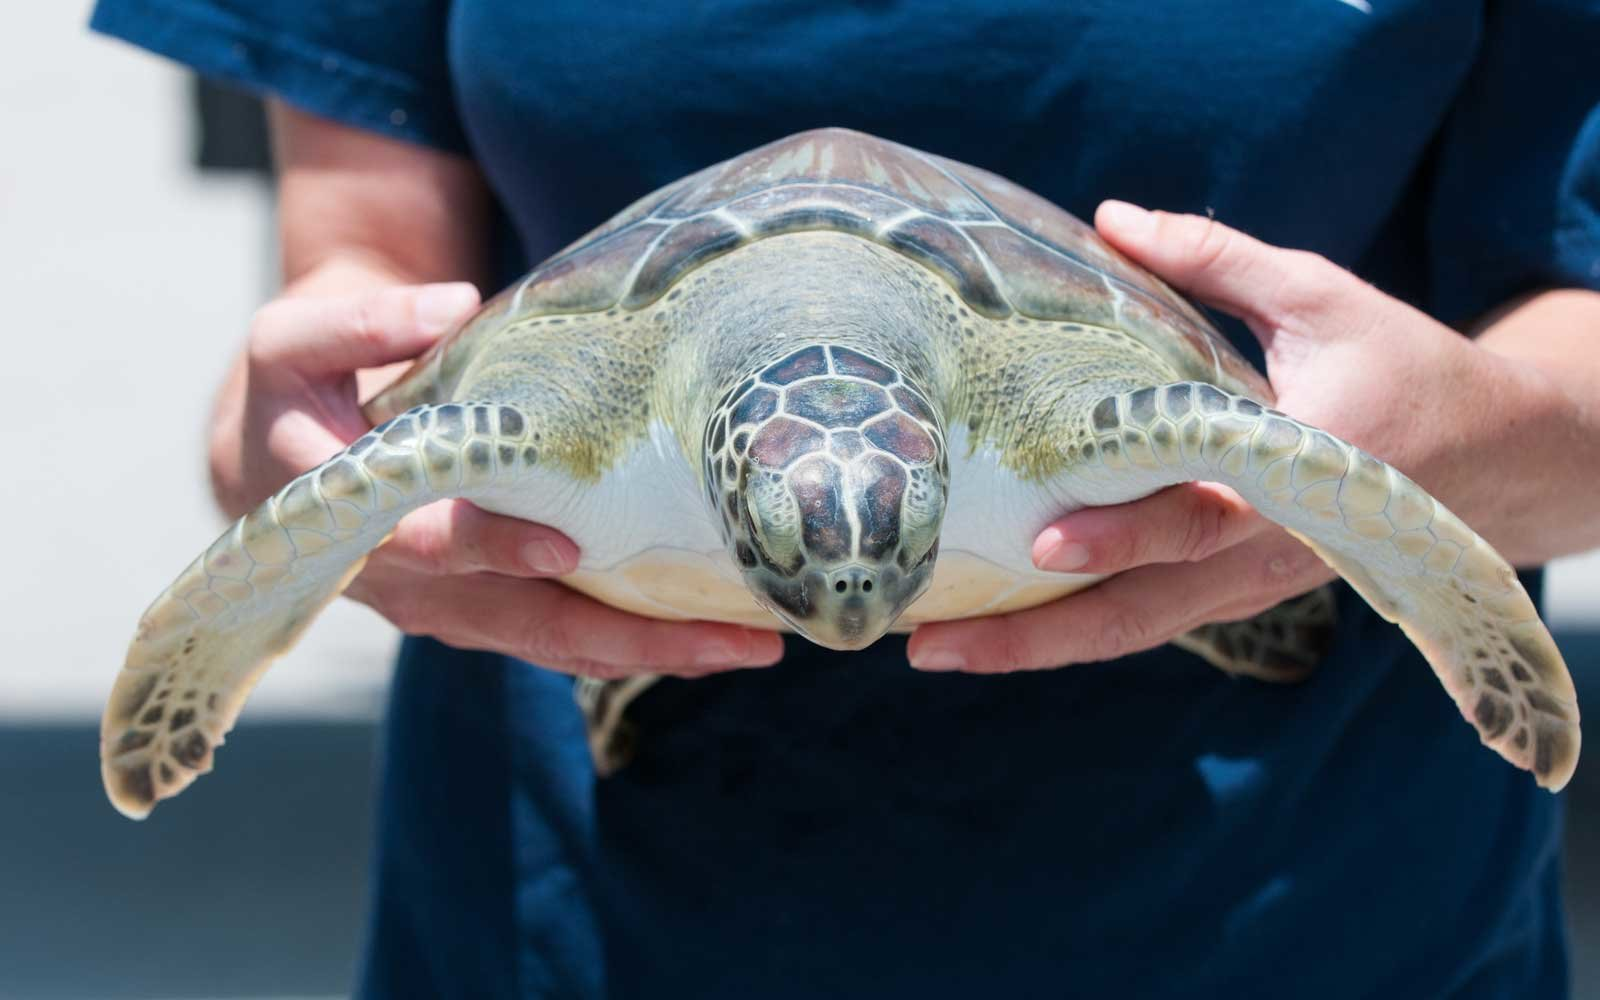 Save the Sea Turtles in Costa Rica